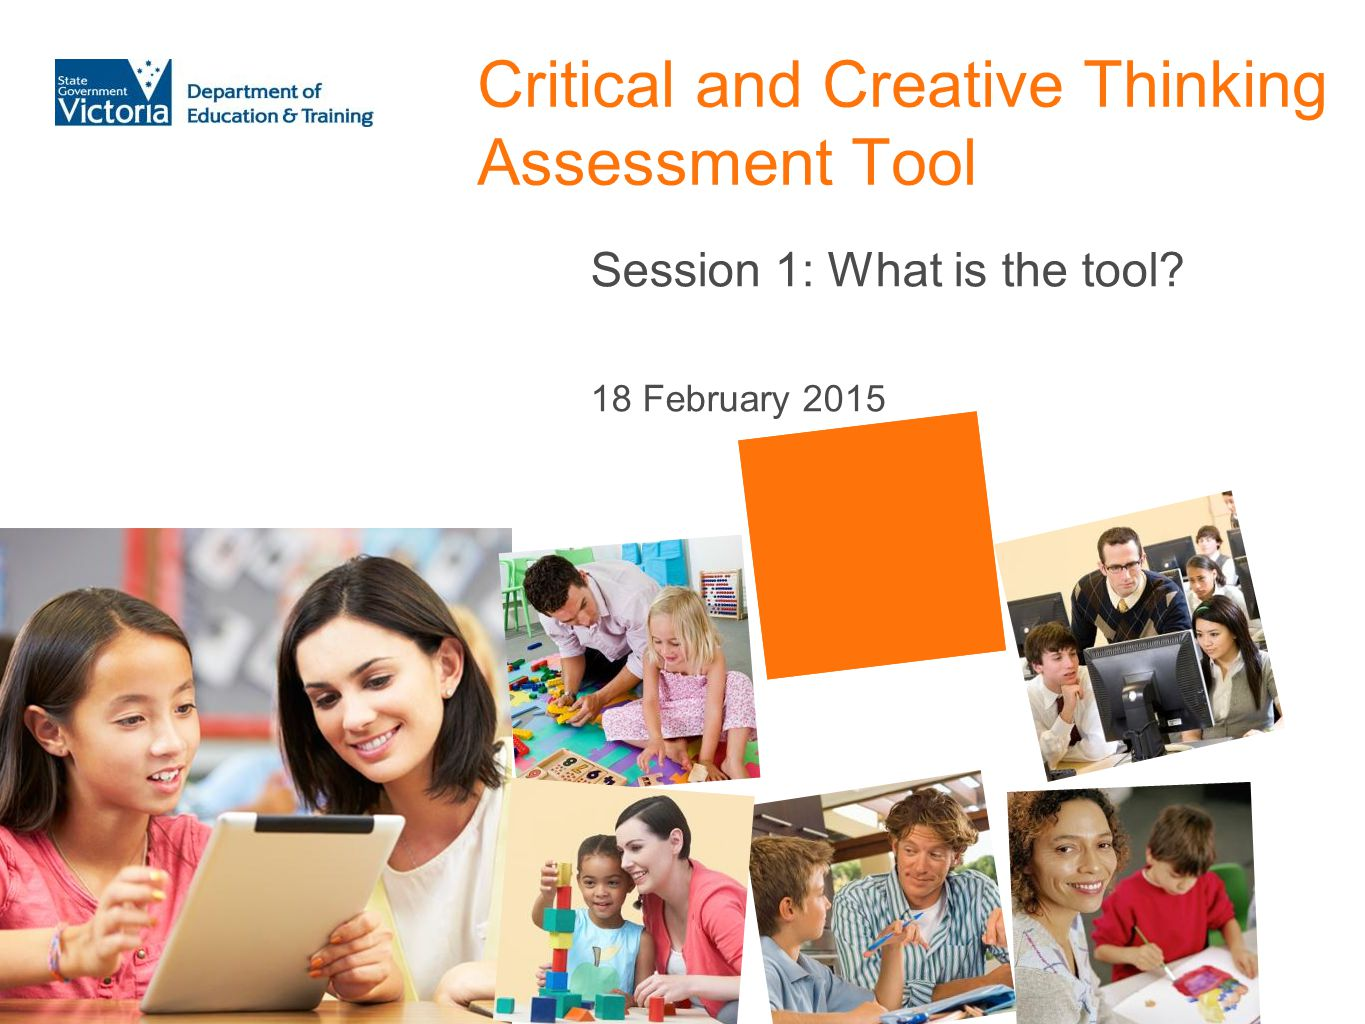 Critical and Creative Thinking Assessment Tool Session 1: What is the tool? 18 February 2015